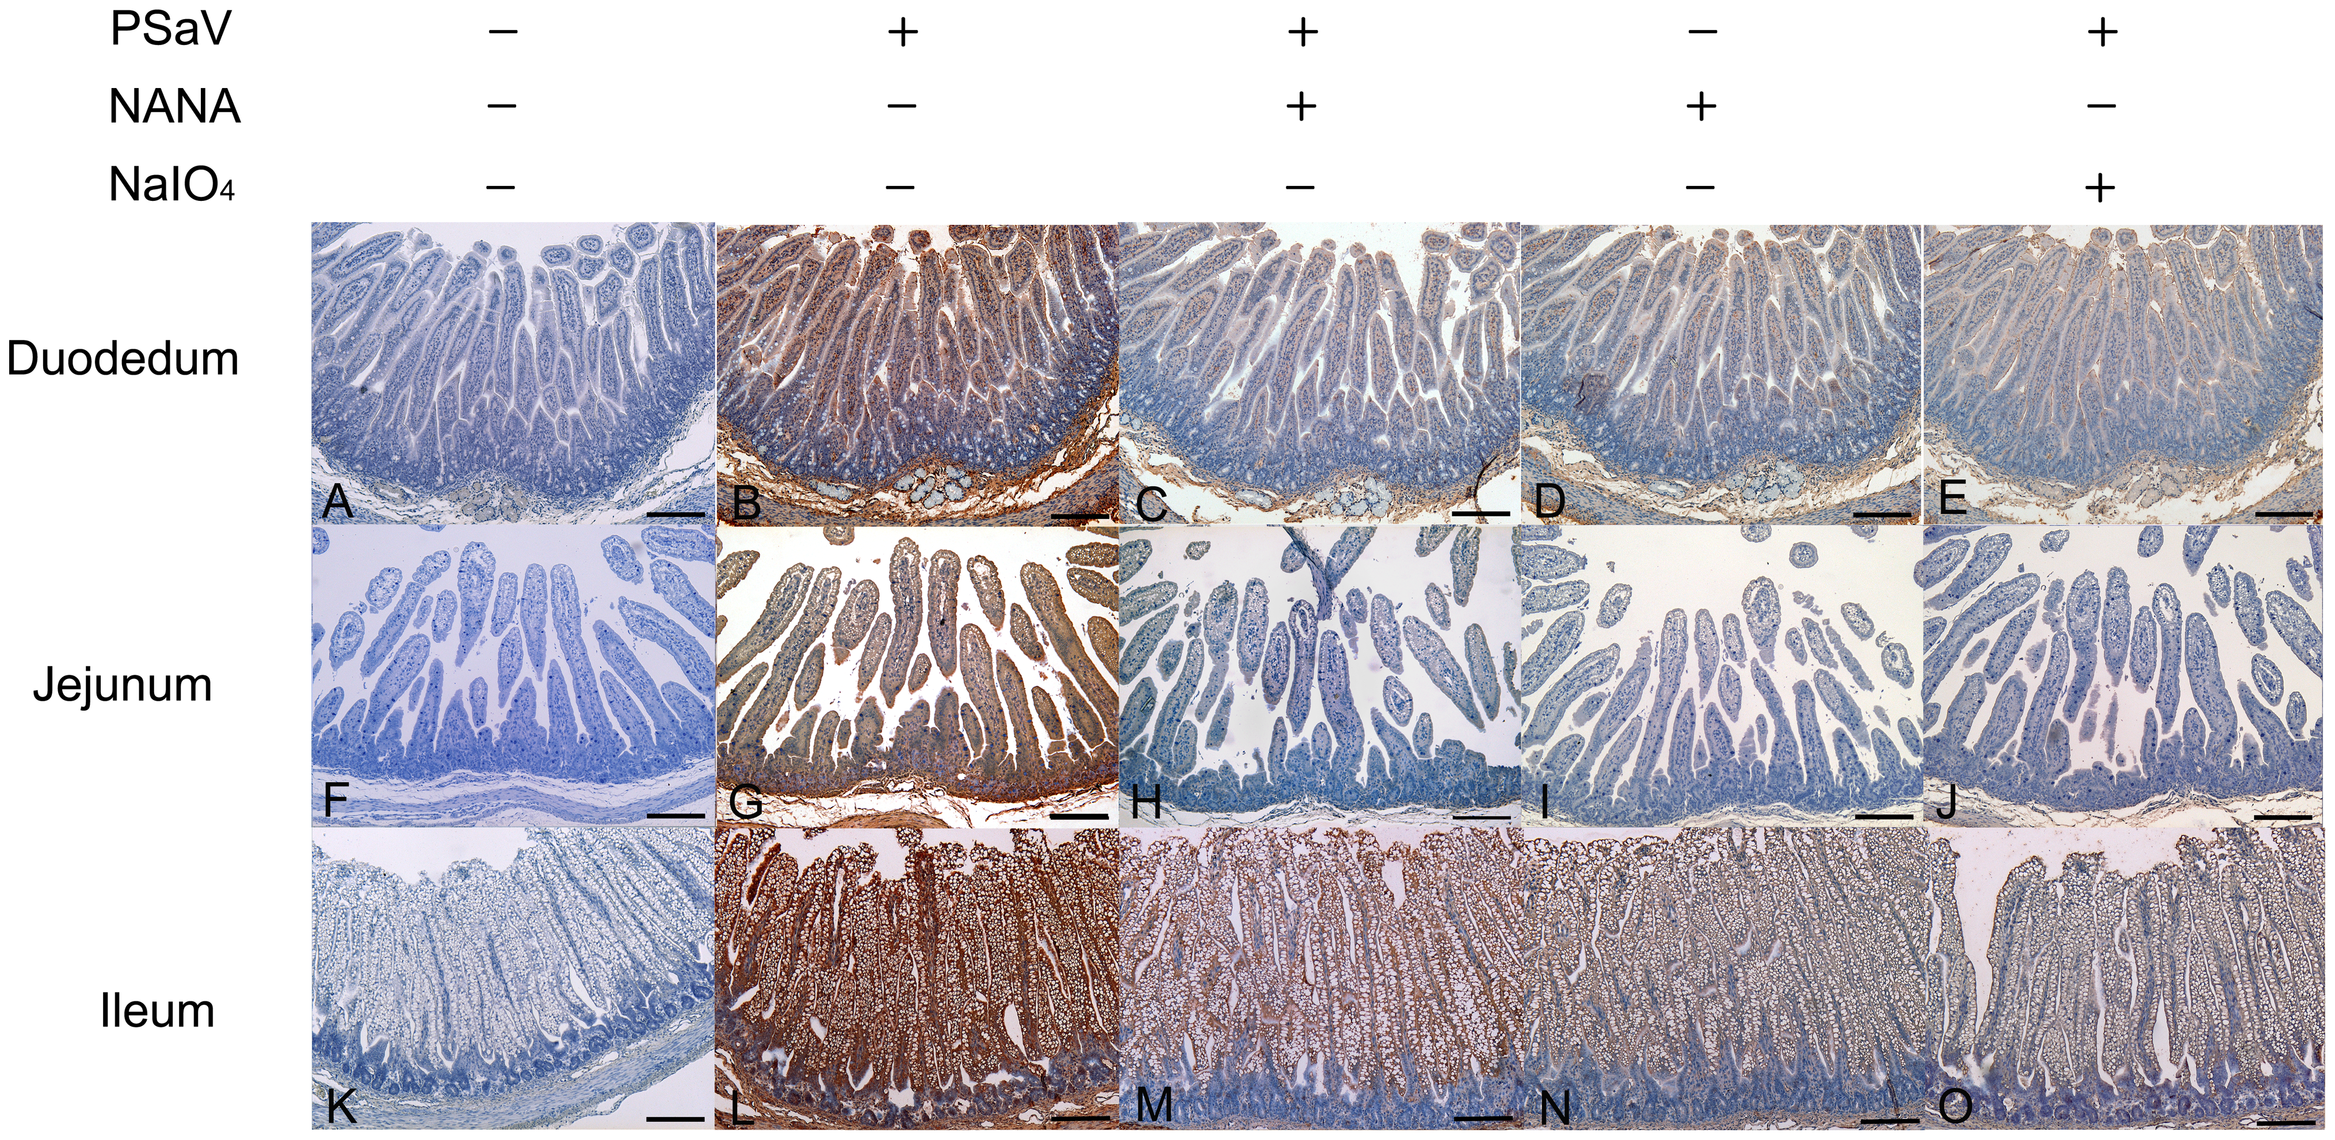 Attachment of porcine sapovirus Cowden strain to porcine intestinal sections is blocked by <i>N</i>-acetyl neuraminic acid (NANA) or pretreatment with NaIO<sub>4</sub>.